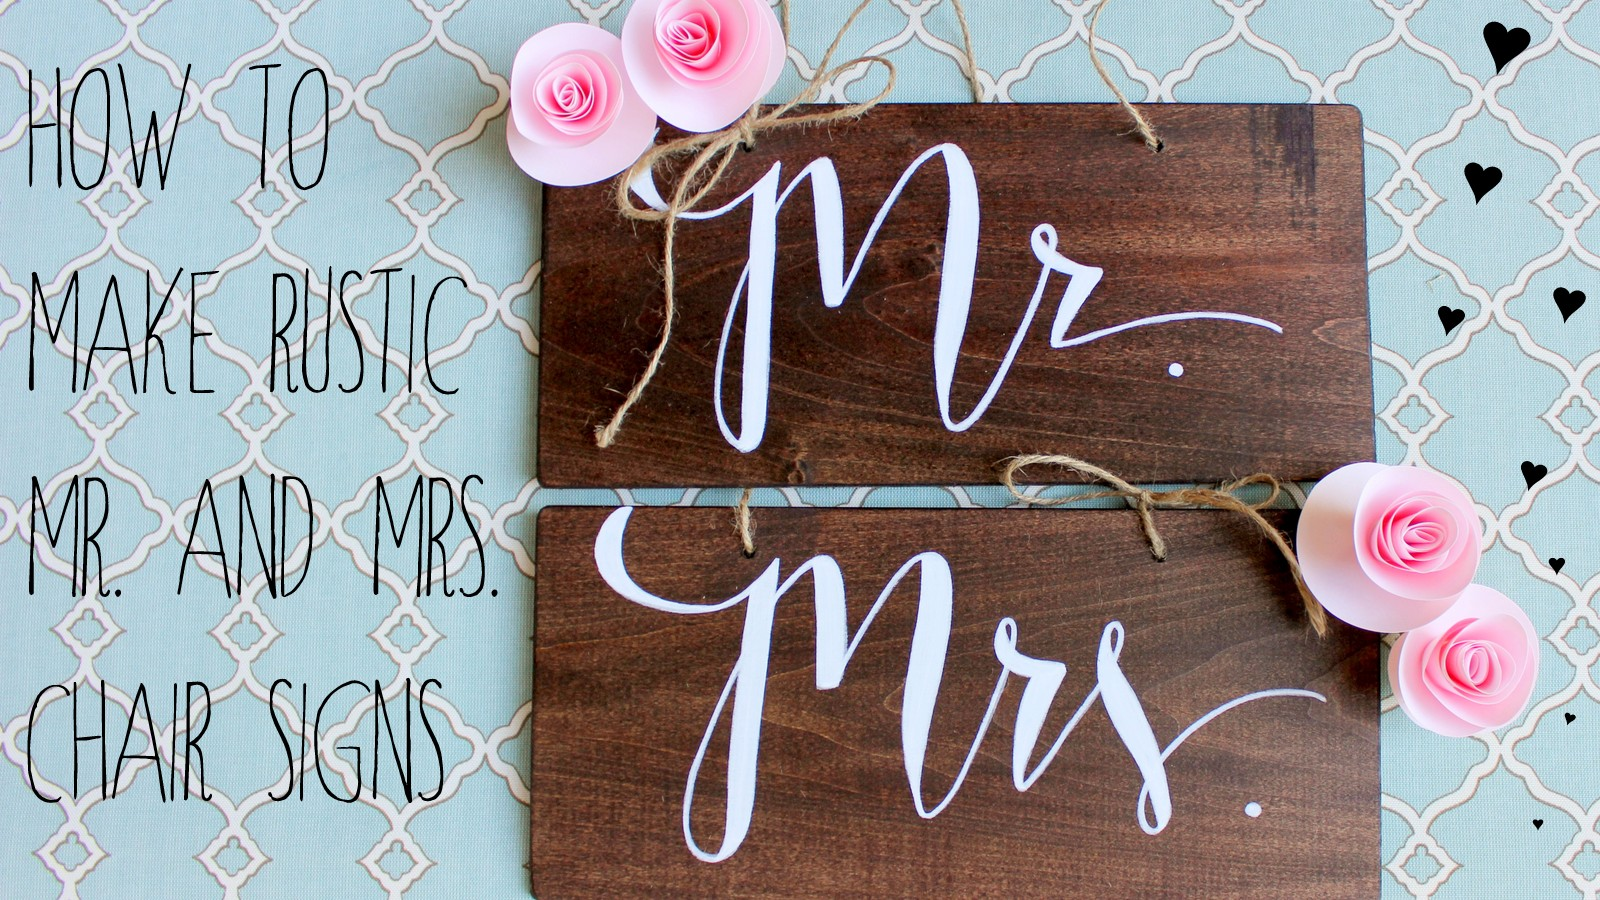 Dream State How To Make Rustic Mr Amp Mrs Wedding Chair Signs